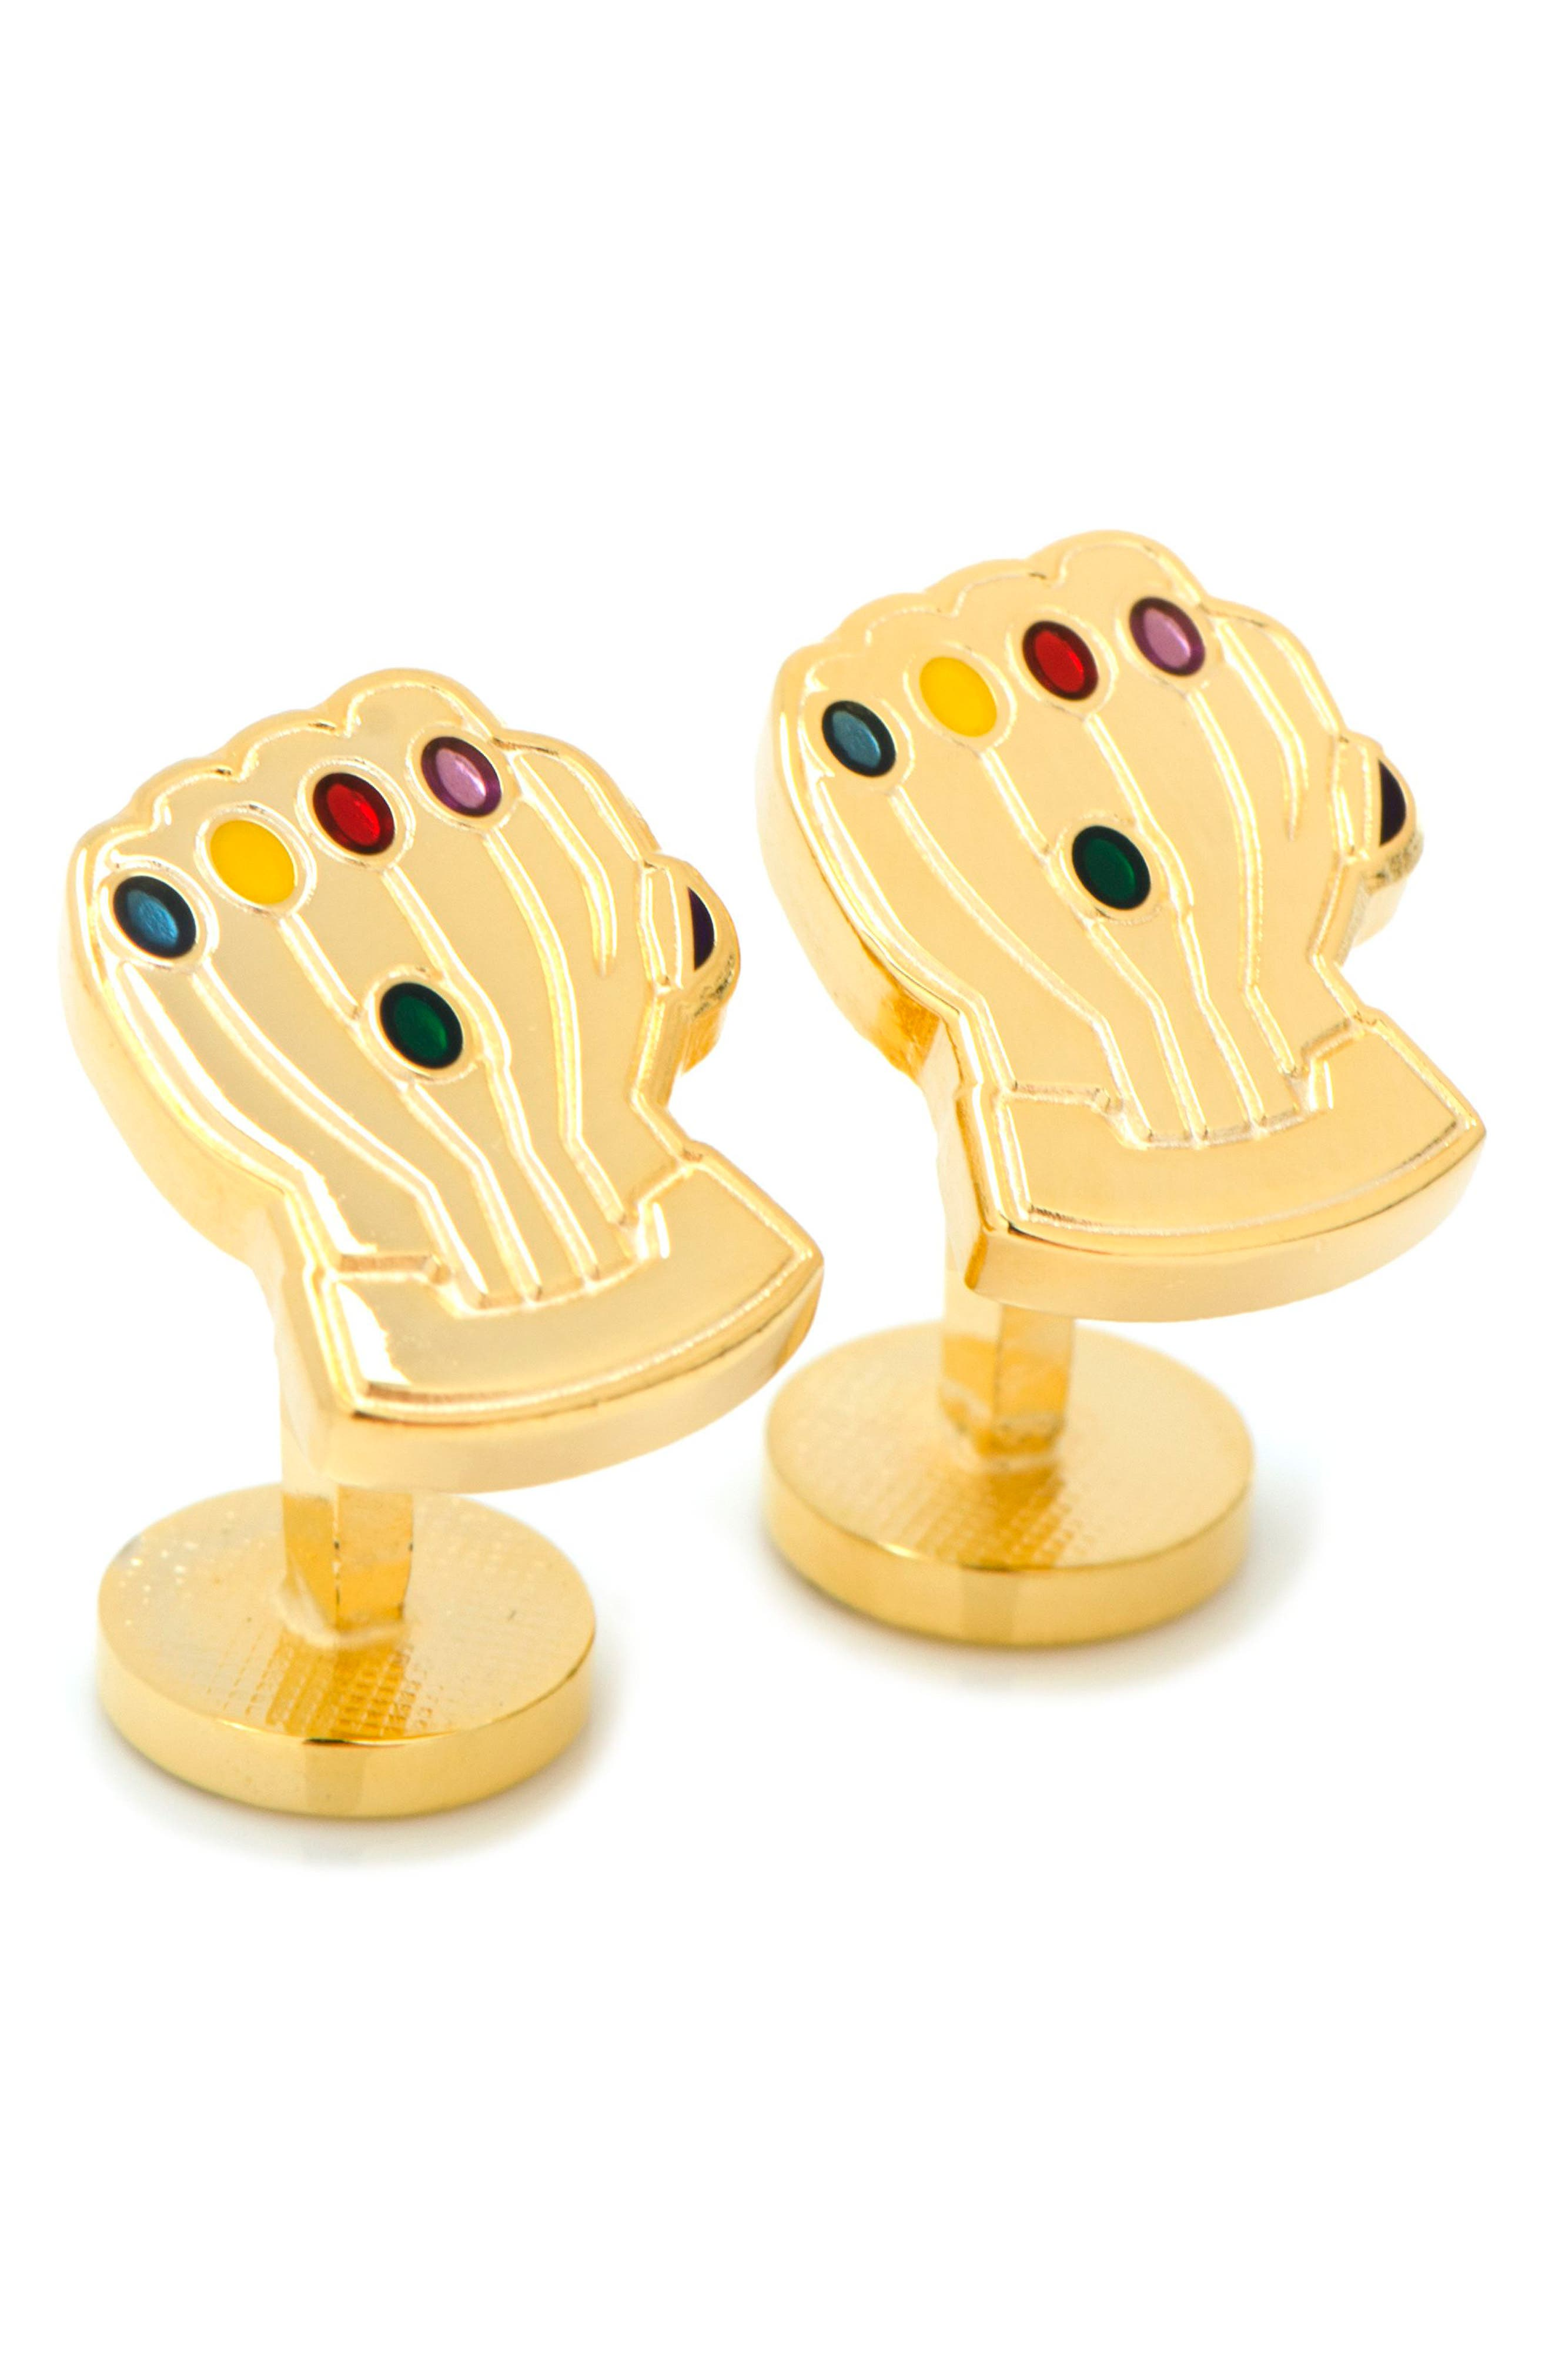 Thanos Infinity Gauntlet Cuff Links,                             Main thumbnail 1, color,                             GOLD